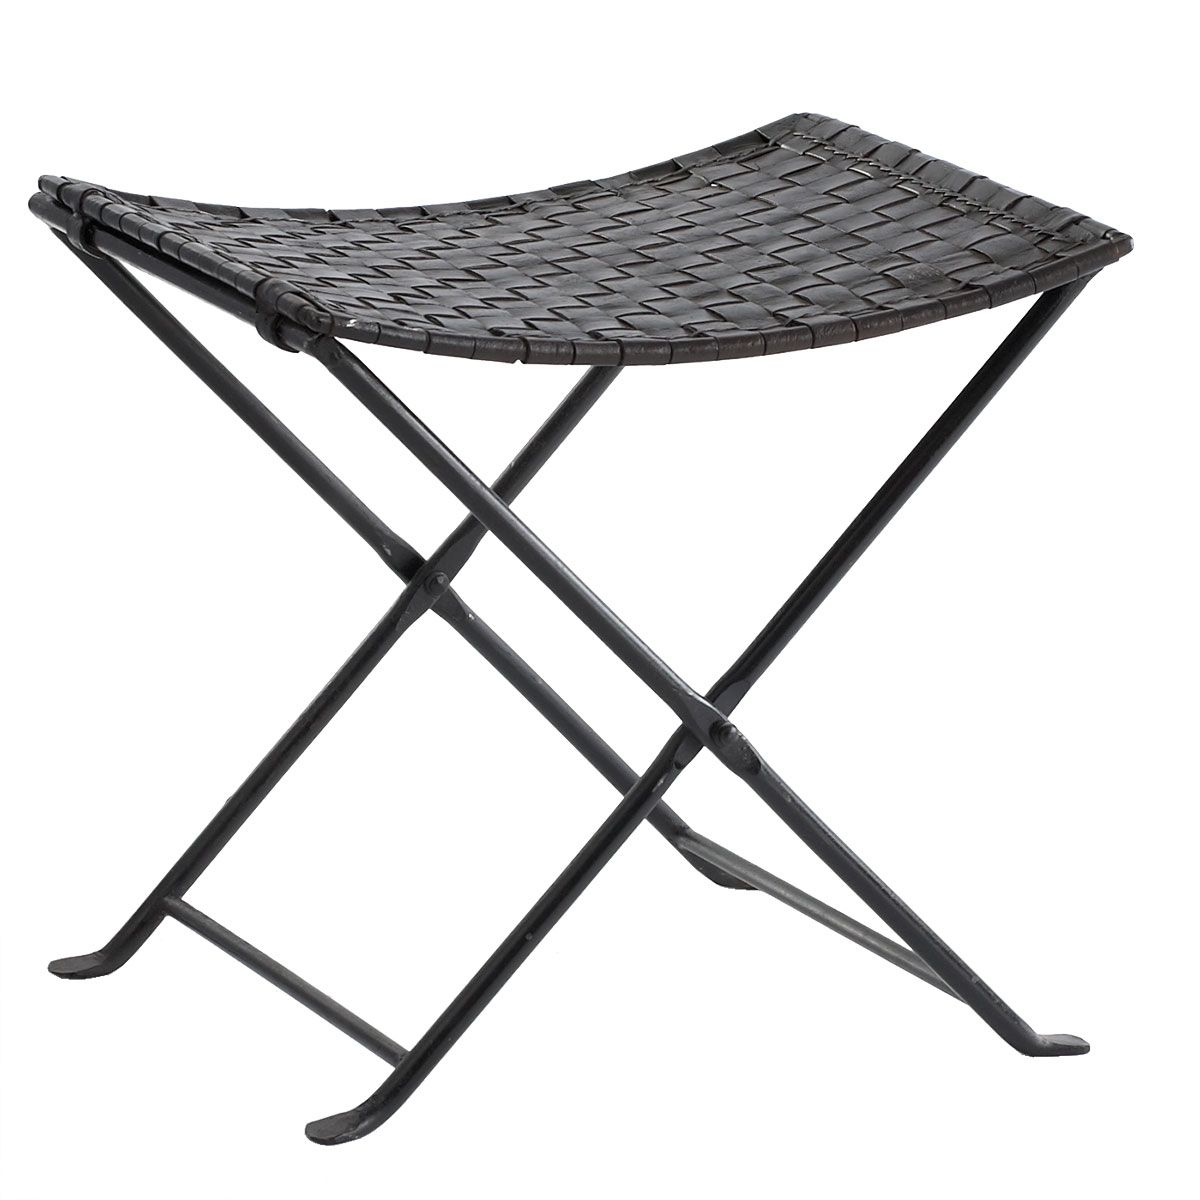 Strange Woven Leather Folding Stool 169 Dimensions 19W X 16D X Pabps2019 Chair Design Images Pabps2019Com